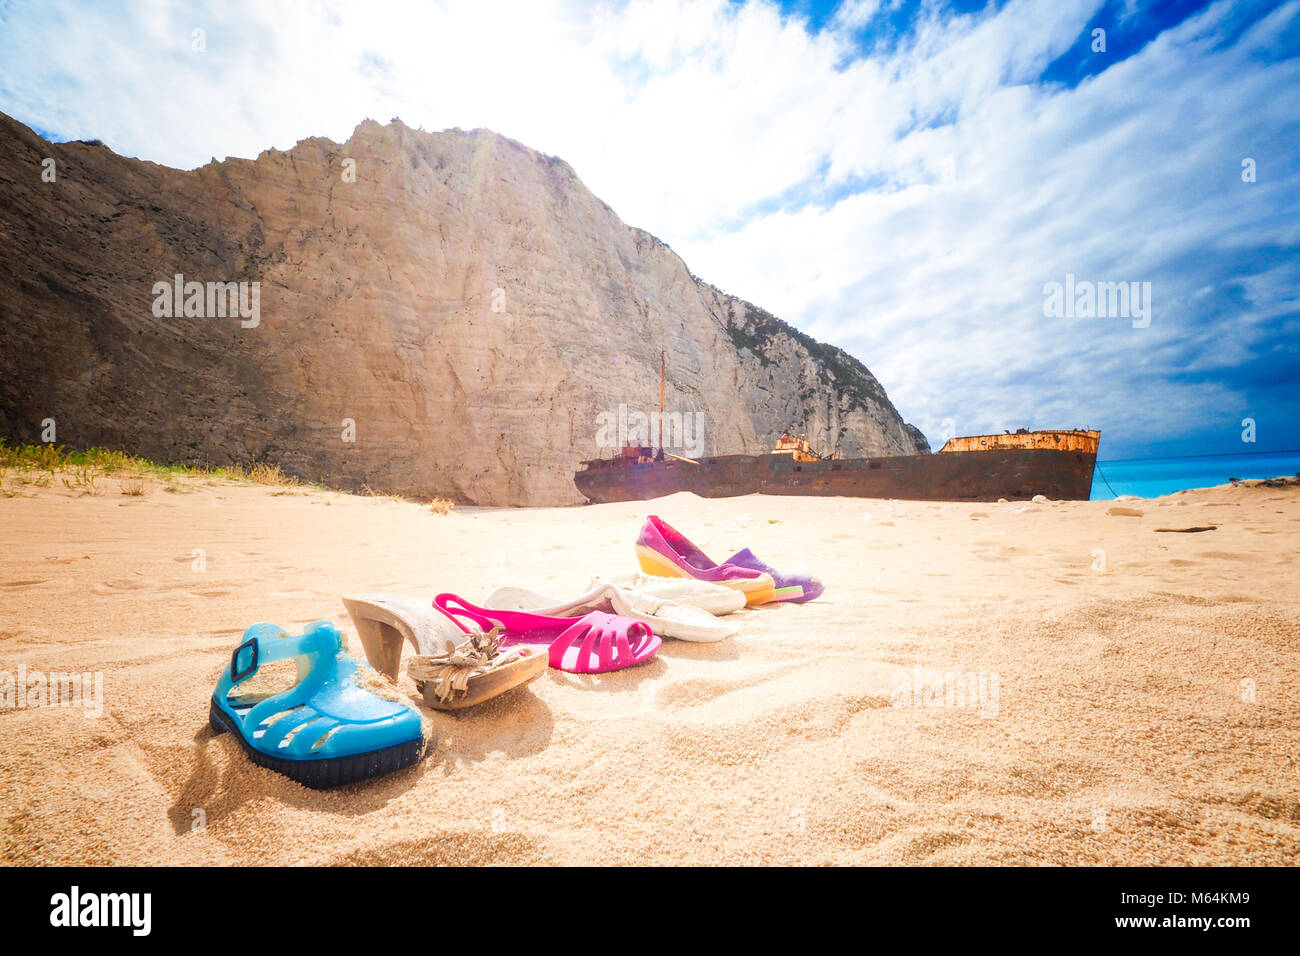 Trash left at Navagio beach, with Panagiotis shipwreck in back. Zakynthos, Greece. Artistic view. - Stock Image